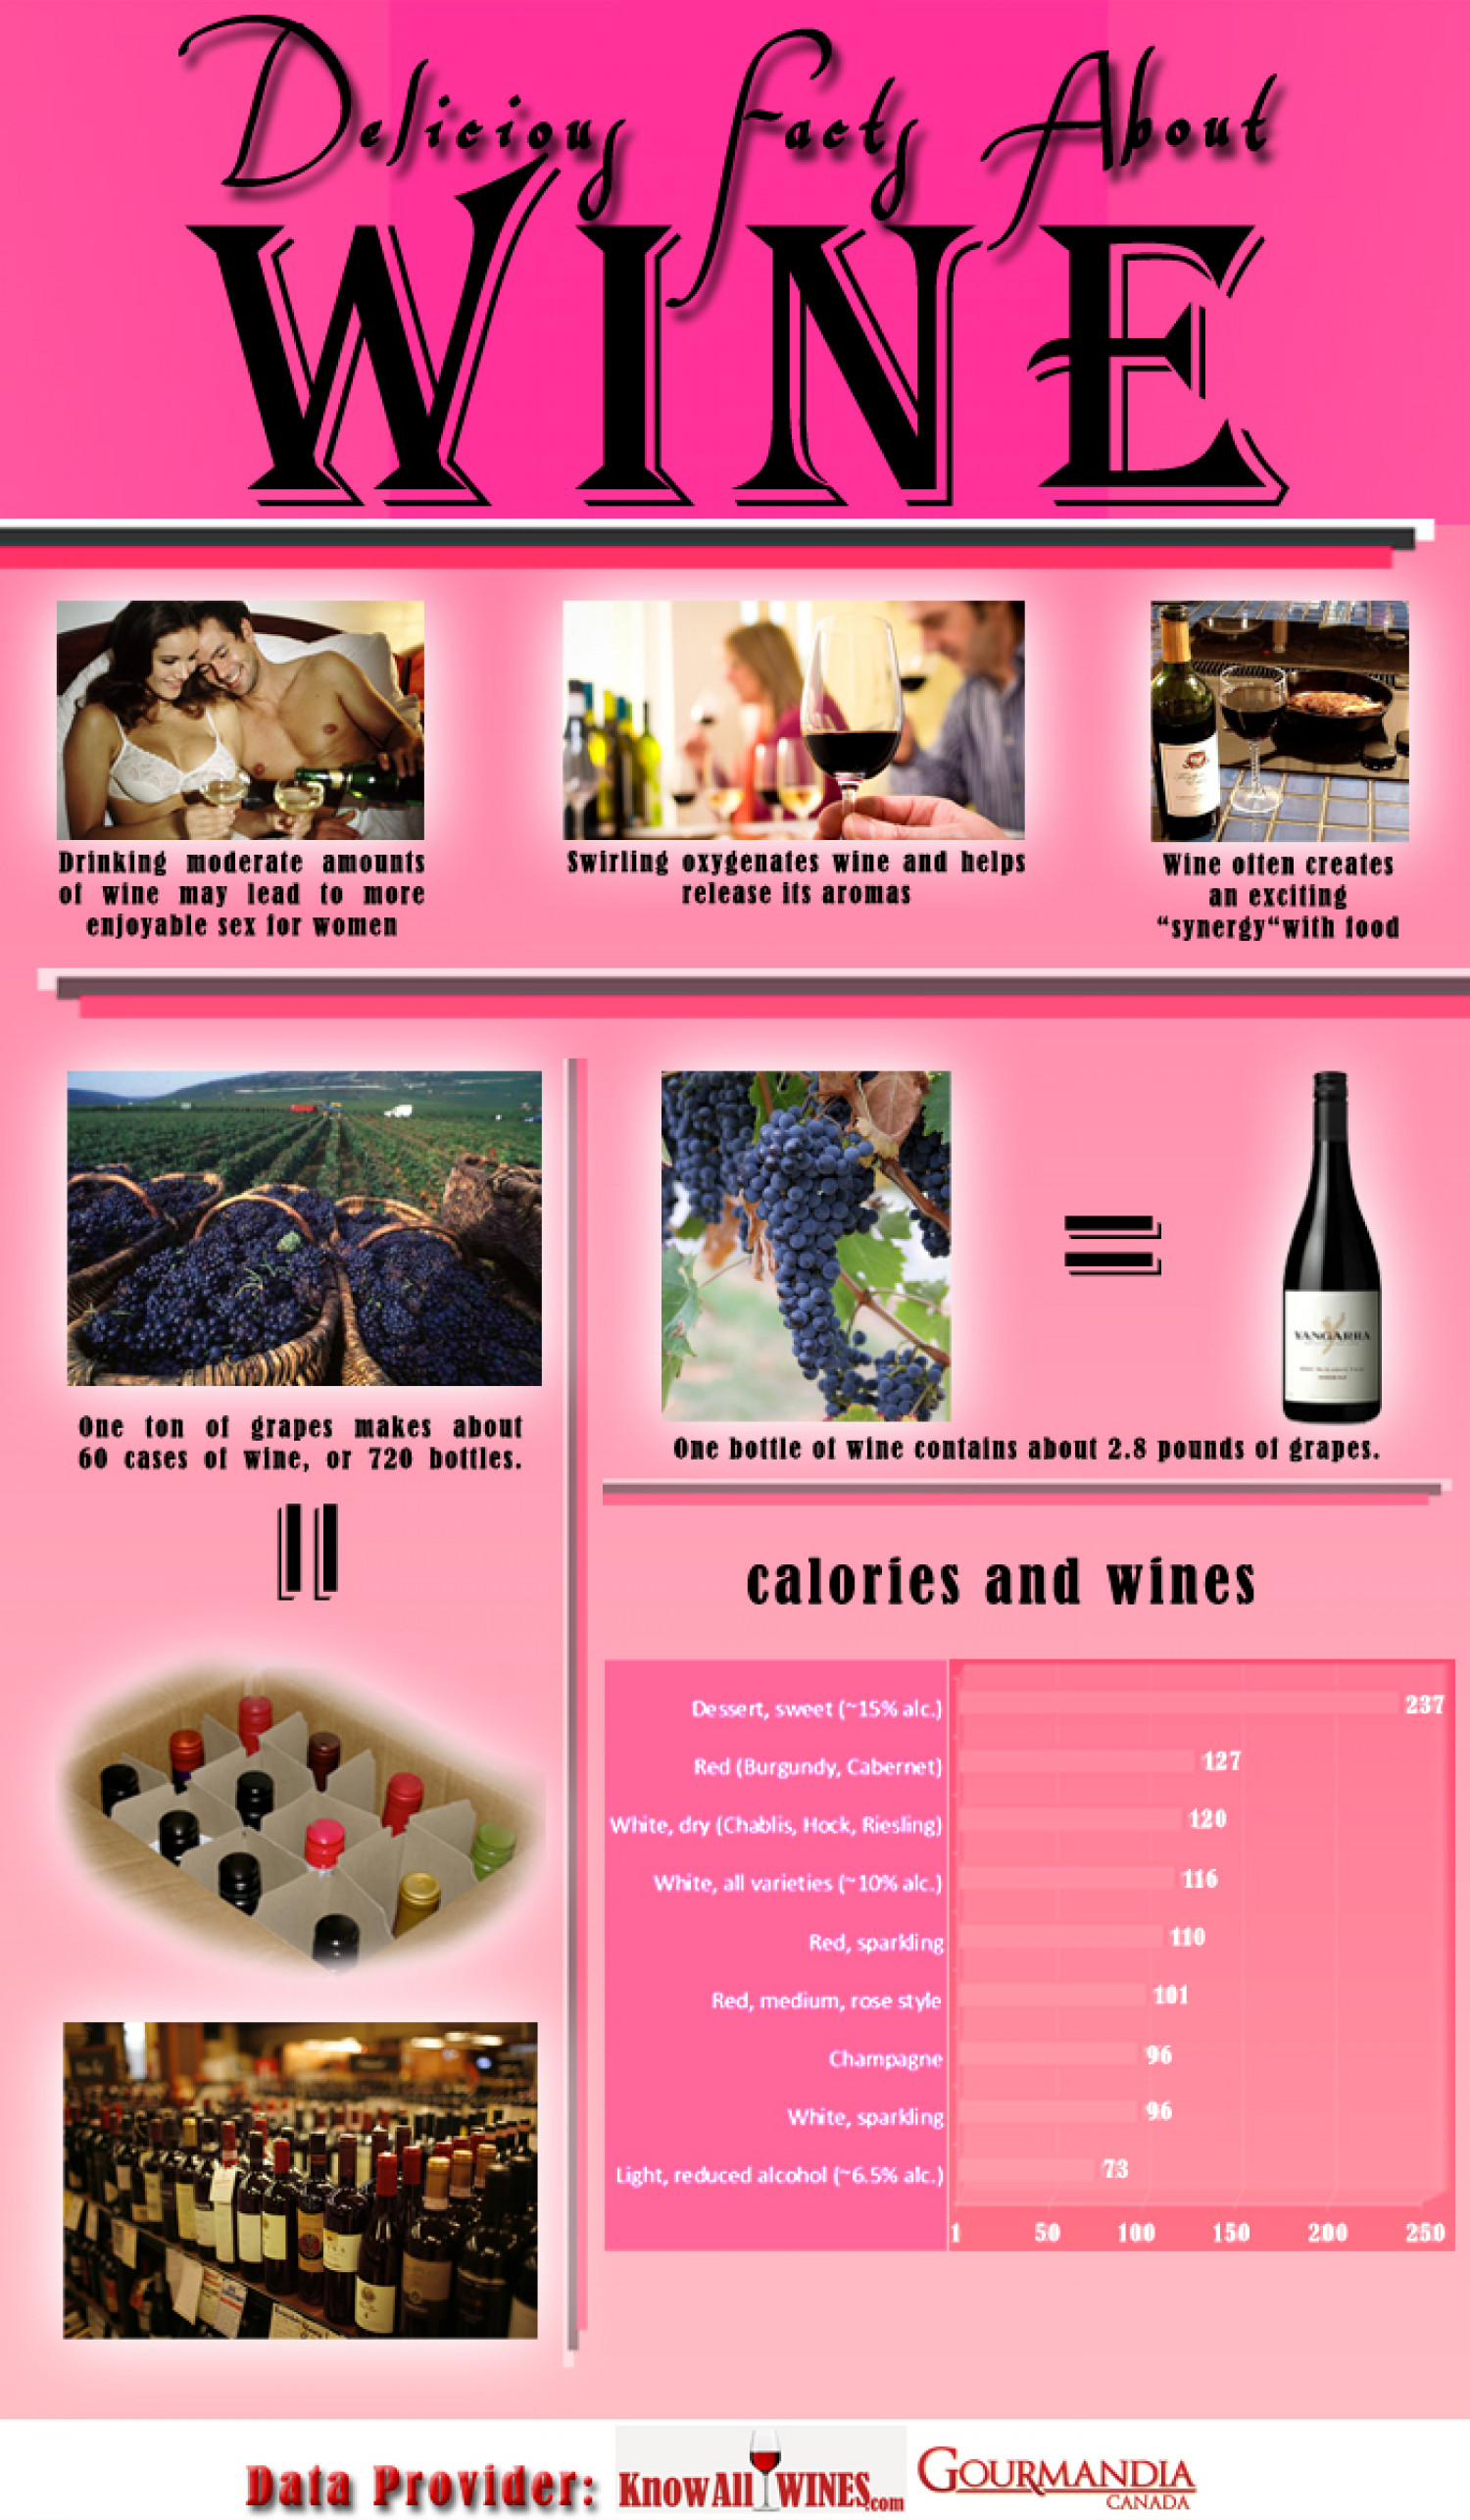 Delicious Facts About Wine Infographic